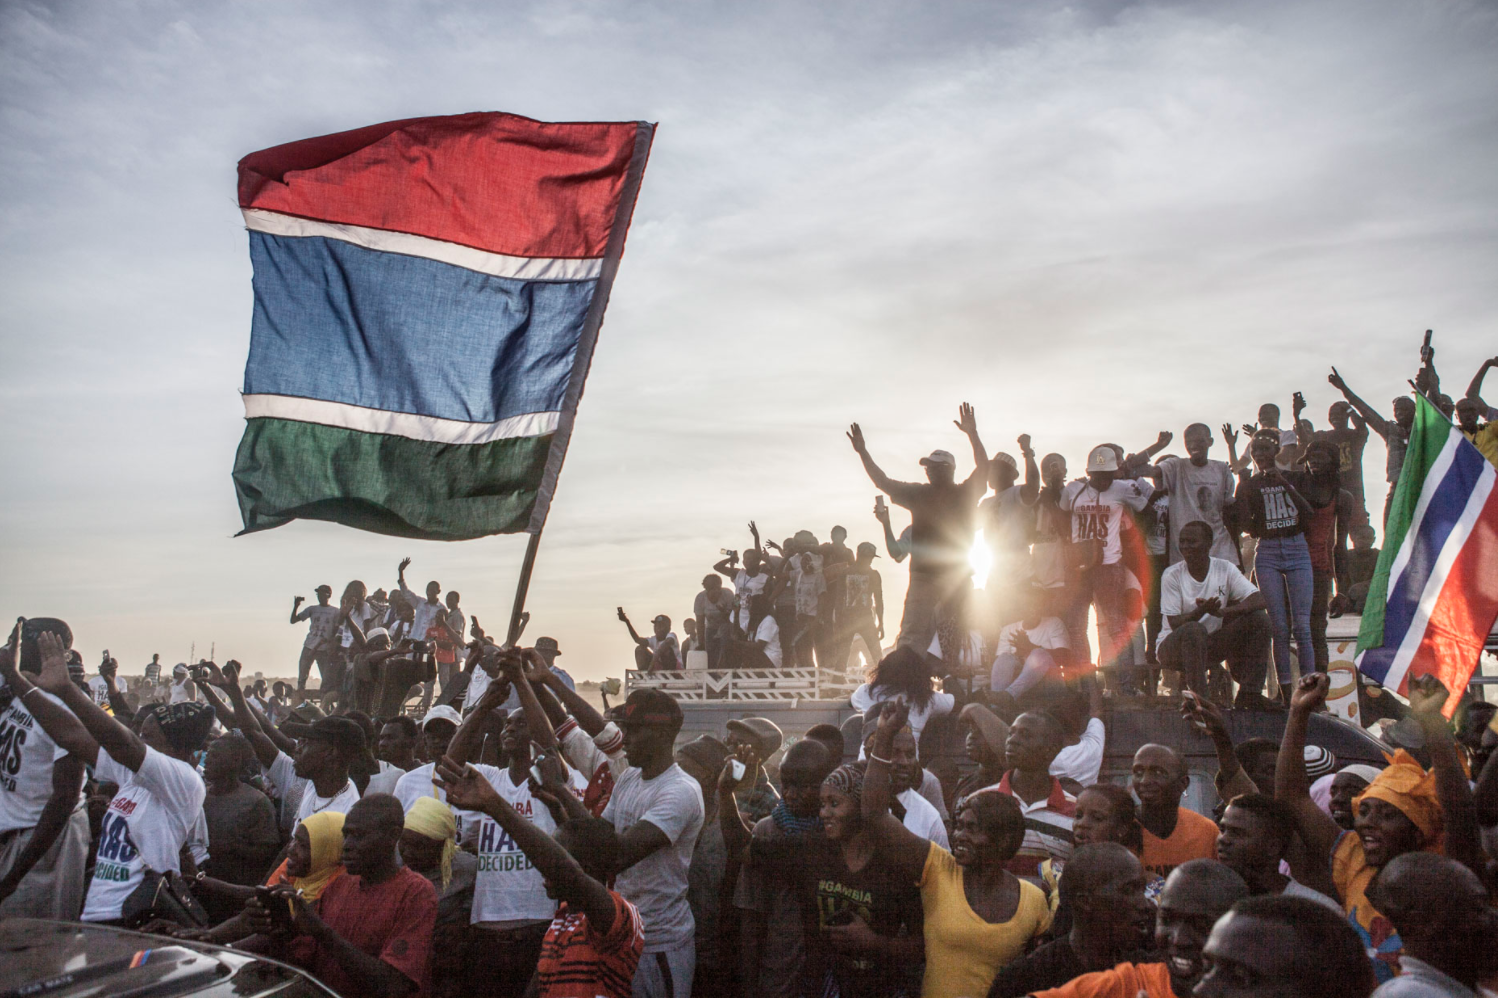 President Adama Barrow returns to The Gambia, after exile in Senegal - an estimated 100,000 people lined the main roads, to welcome him home © Jason Florio